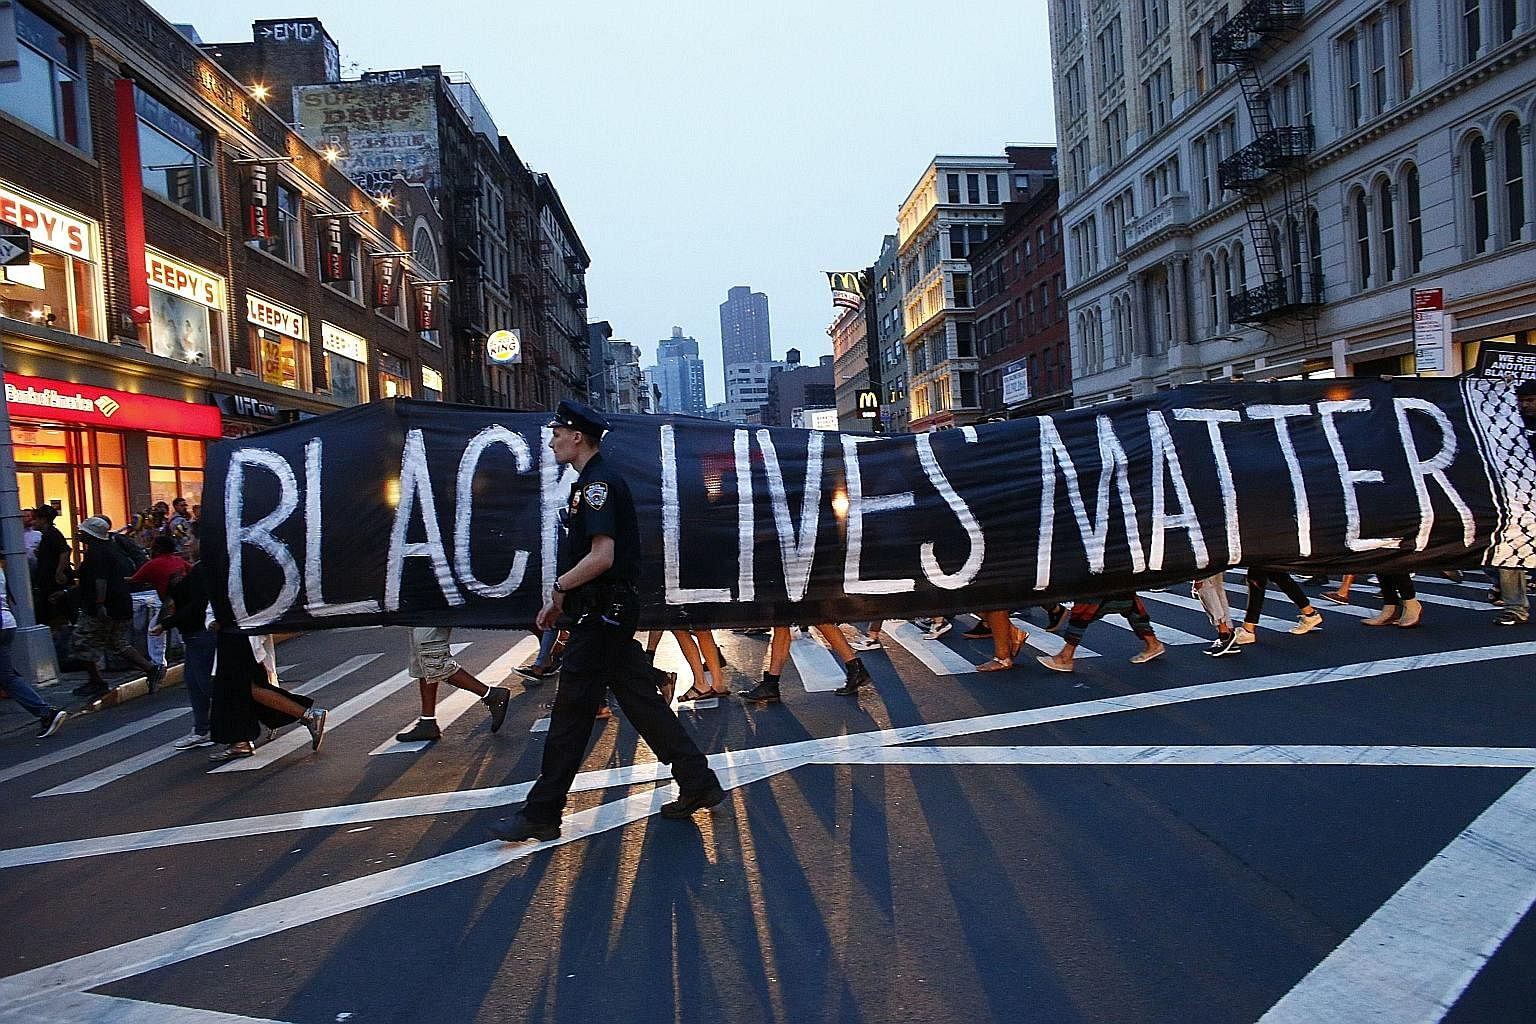 A police officer on patrol during a Black Lives Matter rally in New York last Saturday. Racial issues continue to divide Americans and amid the din of claims and counterclaims, saner voices are calling for a proper and real dialogue.